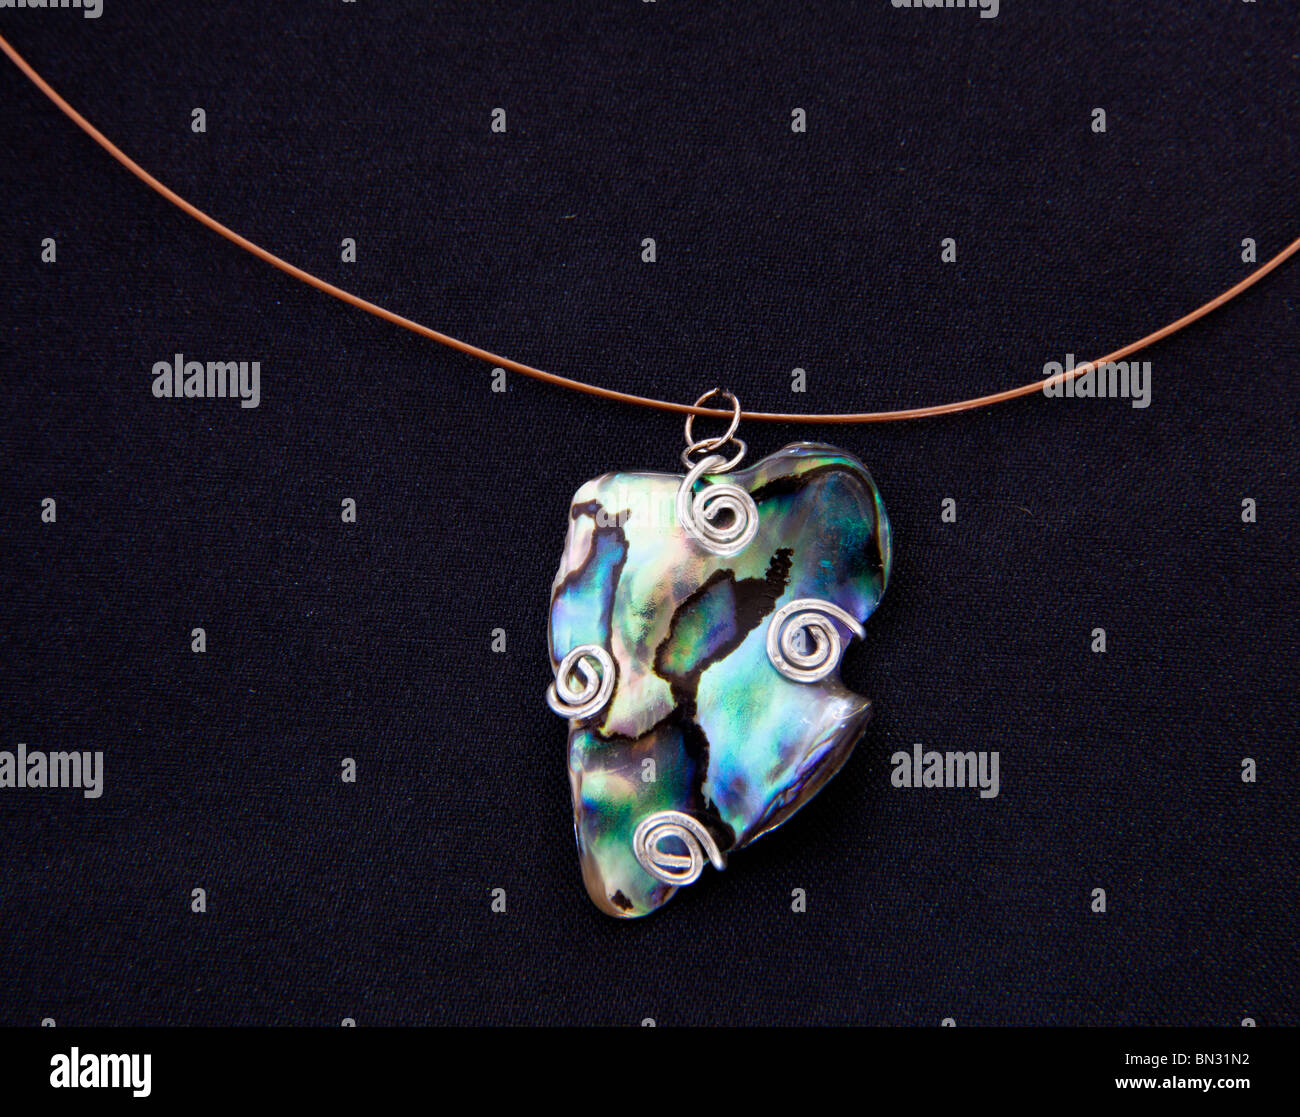 Single Paua shell from New Zealand made into a necklace / pendant - Stock Image